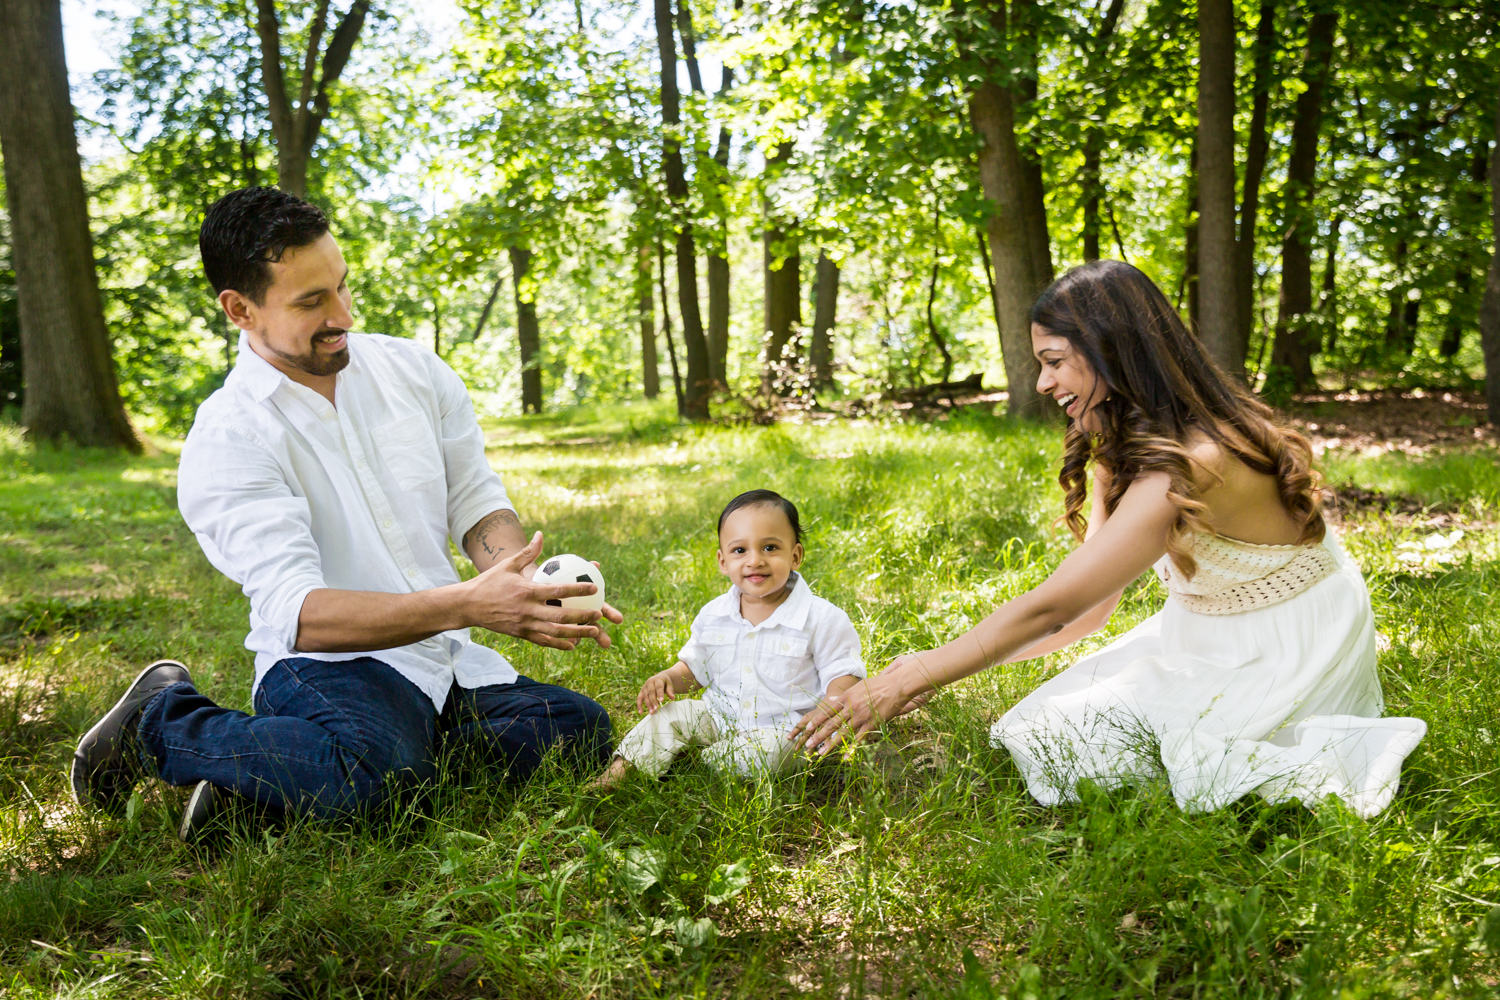 Forest Hills family portrait of parents playing in grass with son